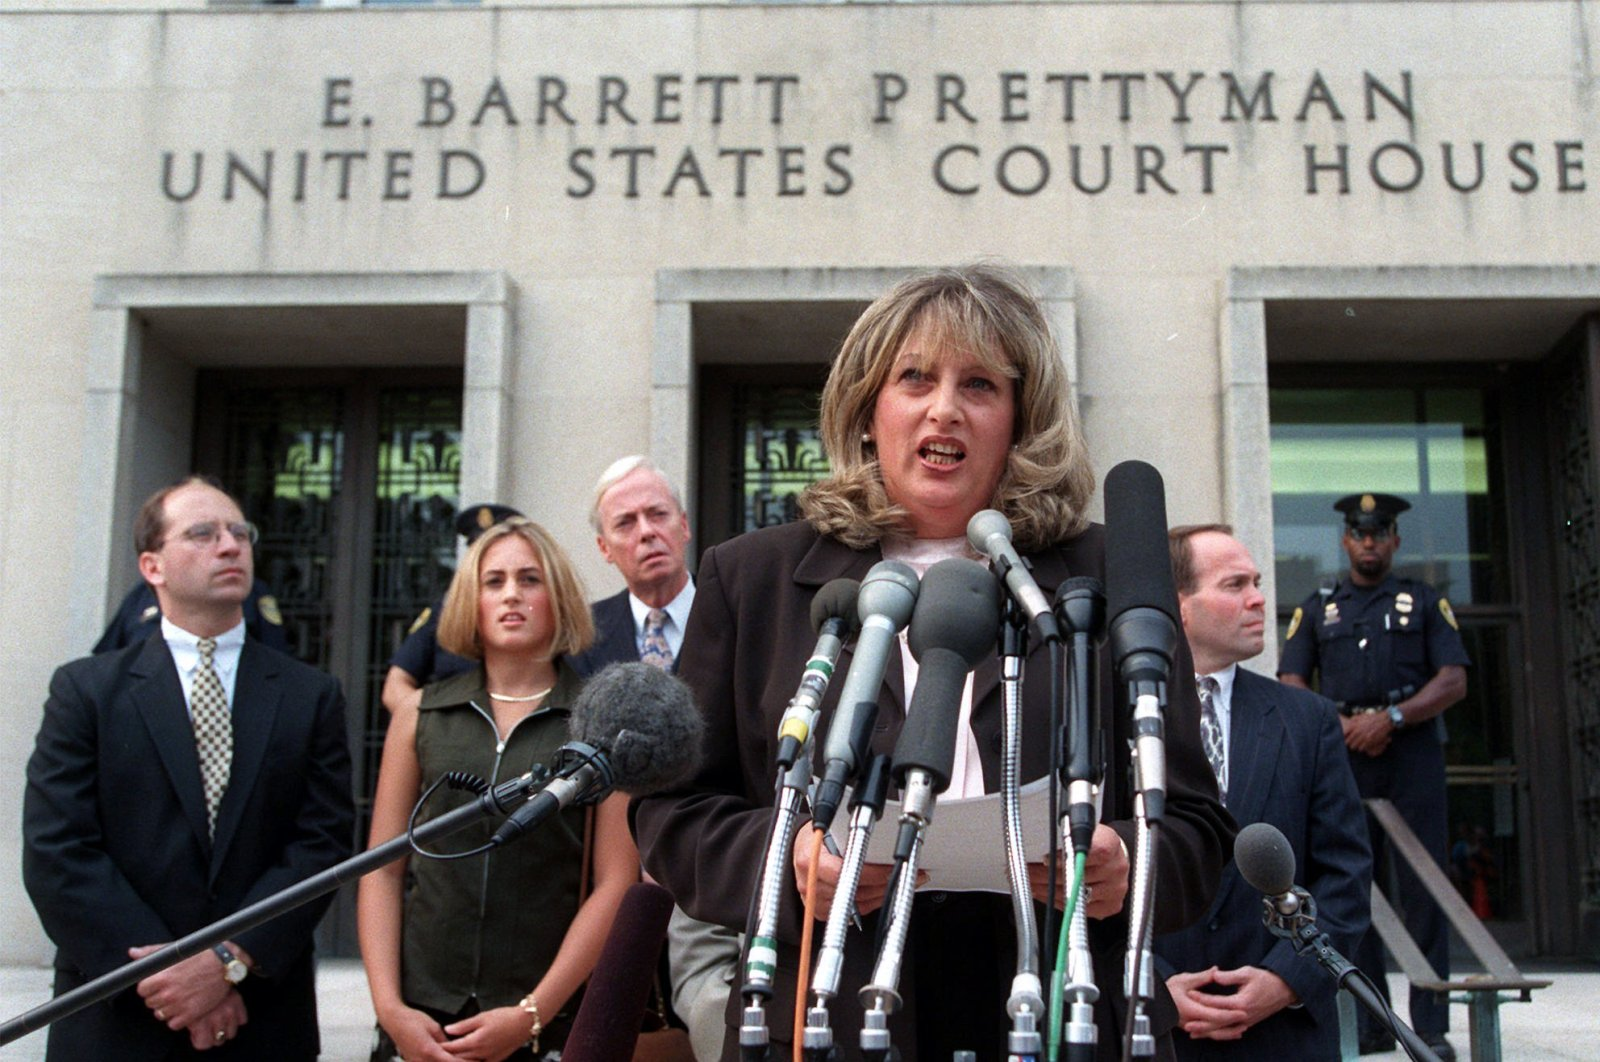 In this July 29, 1998, file photo Linda Tripp meets with reporters outside federal court in Washington after her final appearance before a grand jury investigating an alleged affair between President Bill Clinton and Monica Lewinsky. (AP Photo)